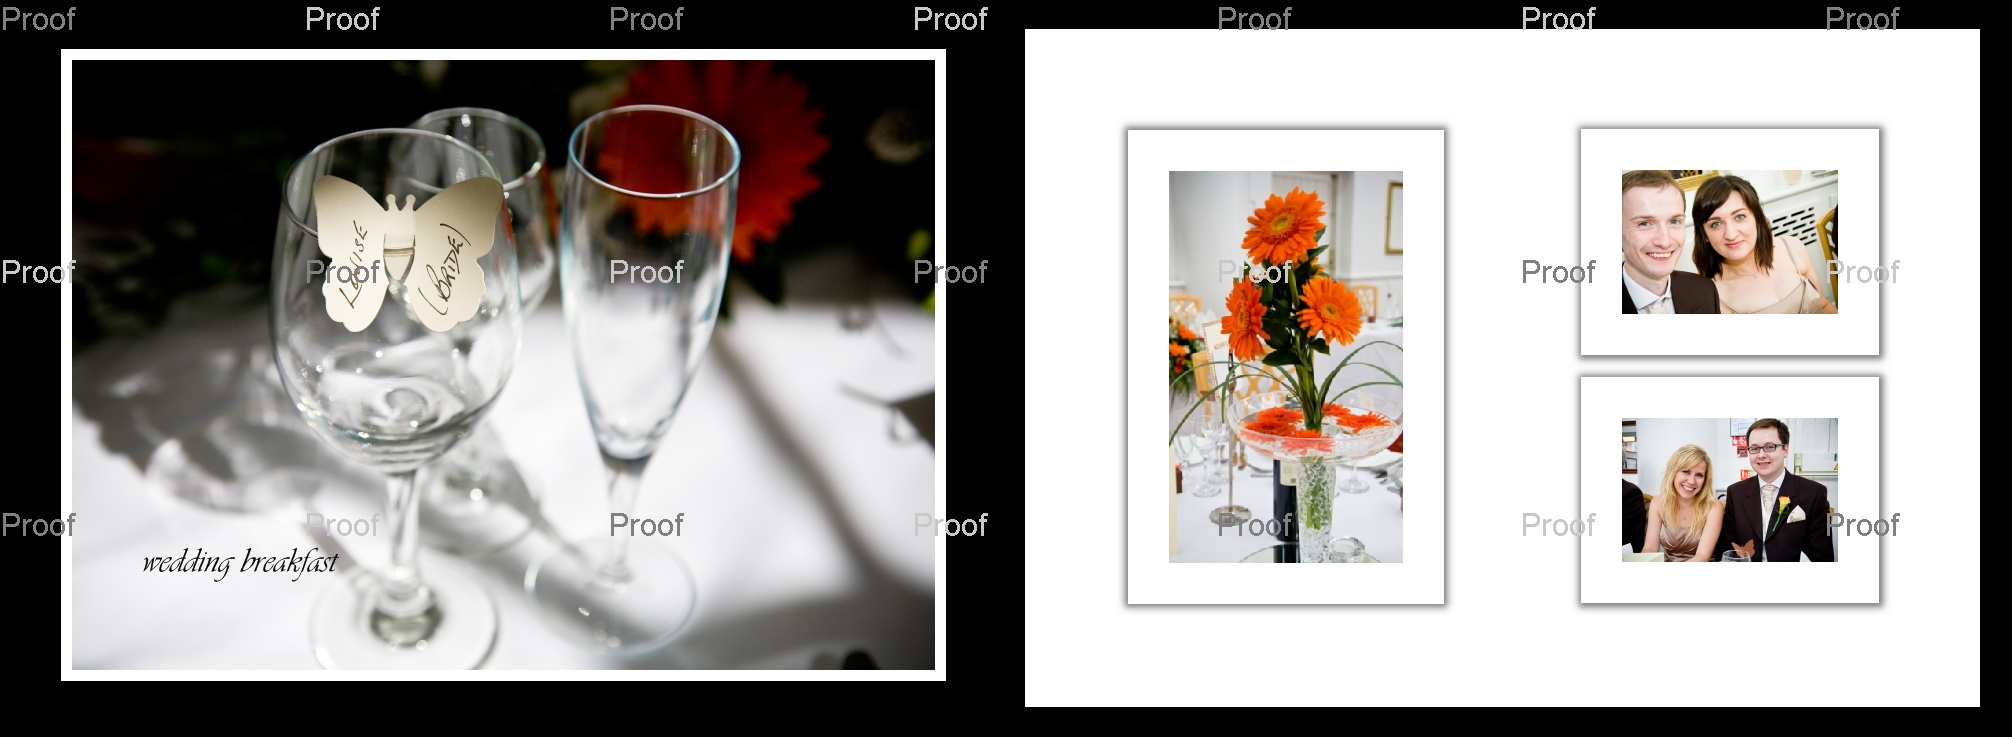 pages 52-53 of wedding storybook album with pictures of wedding breakfast at Manchester wedding venue